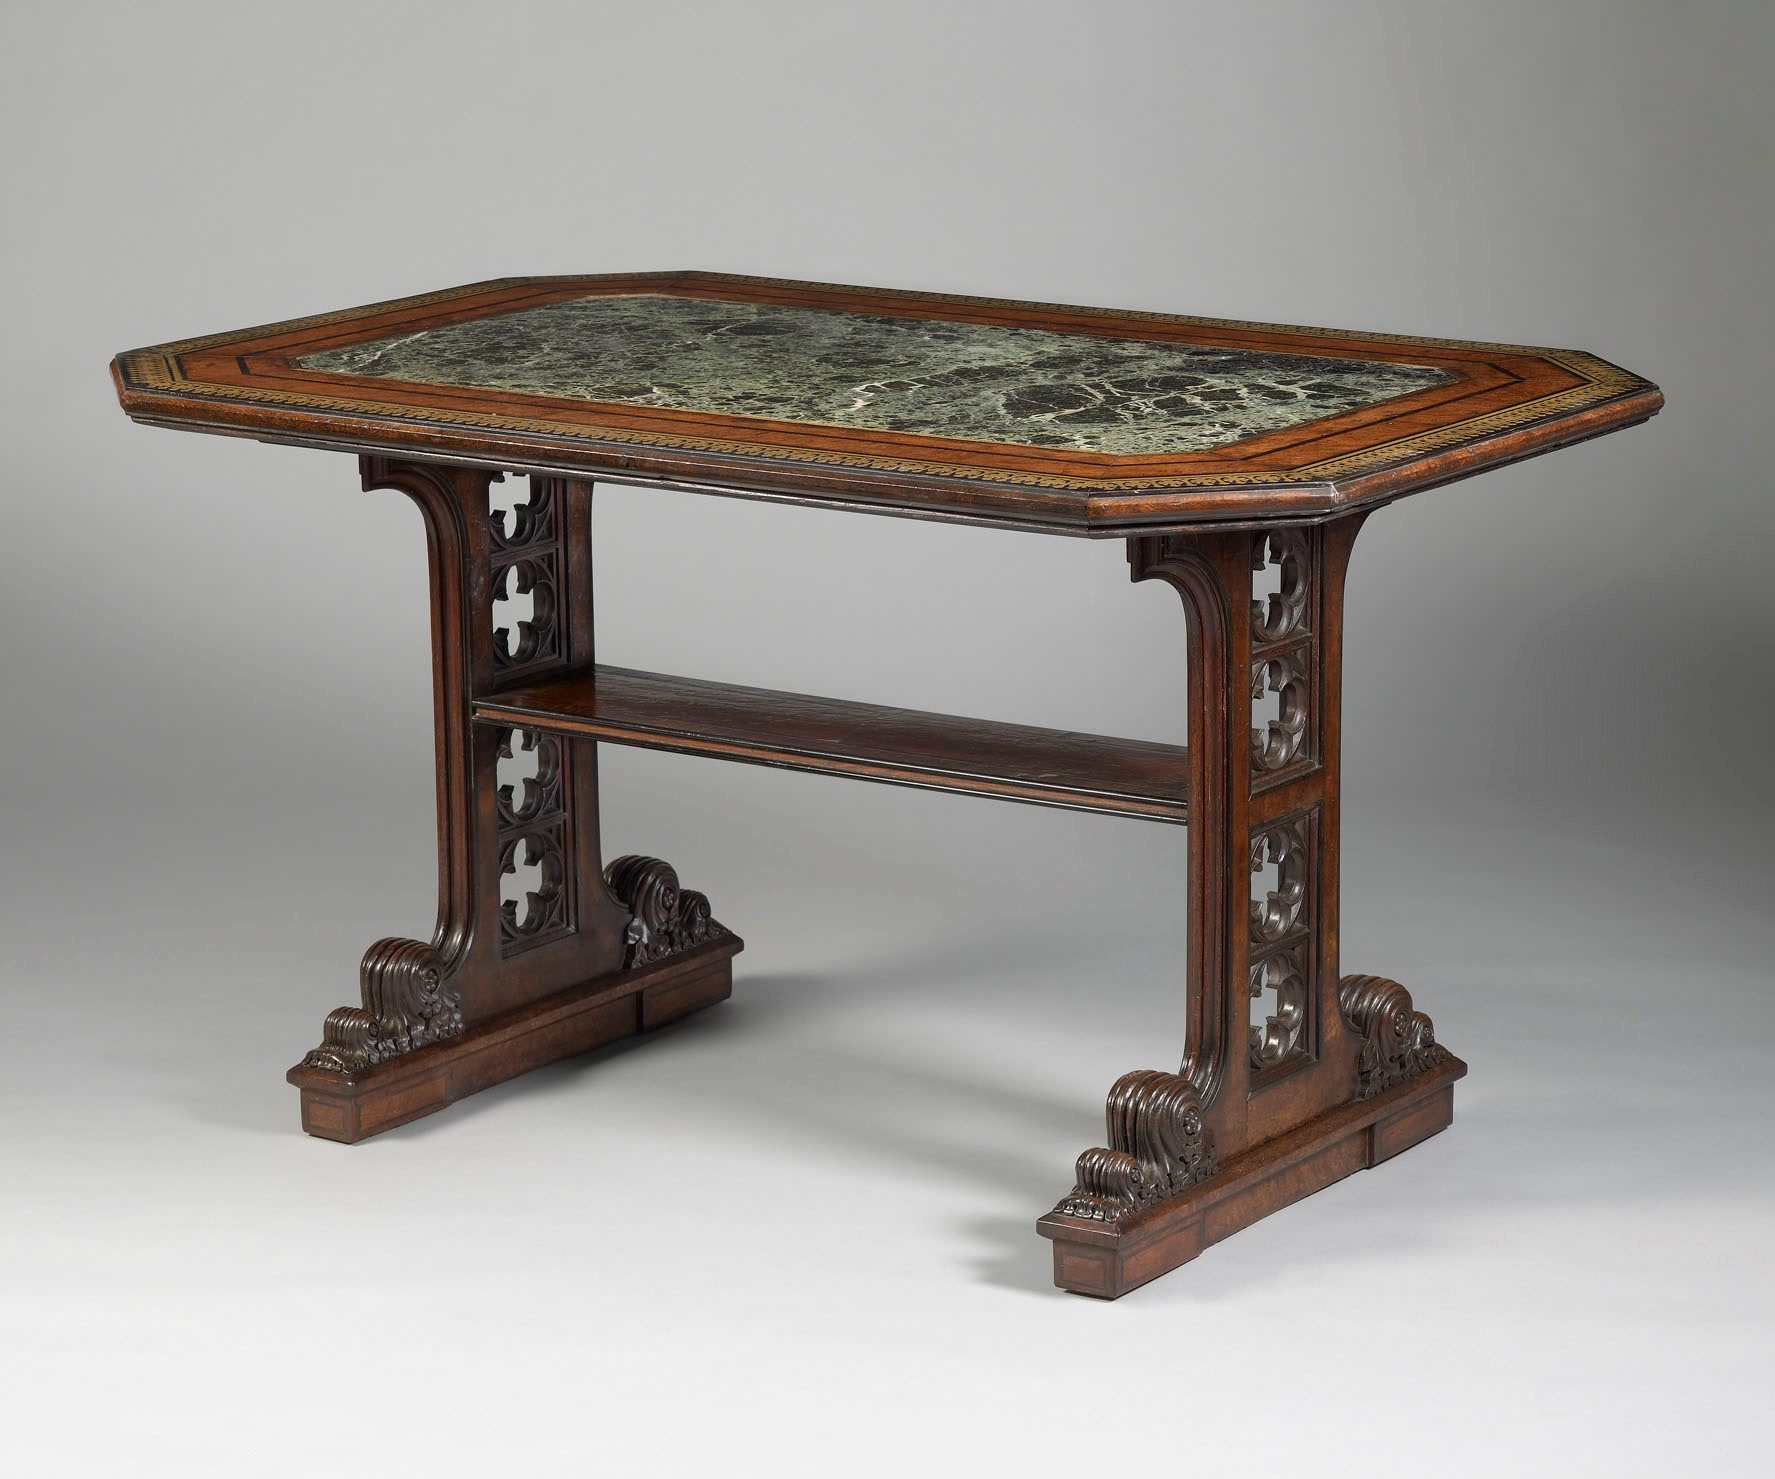 George Bullock Table, circa 1818 probably 'Finished Stock' sale, Christie's, 3-5 May 1819, day 2, lot 45 (private collection)